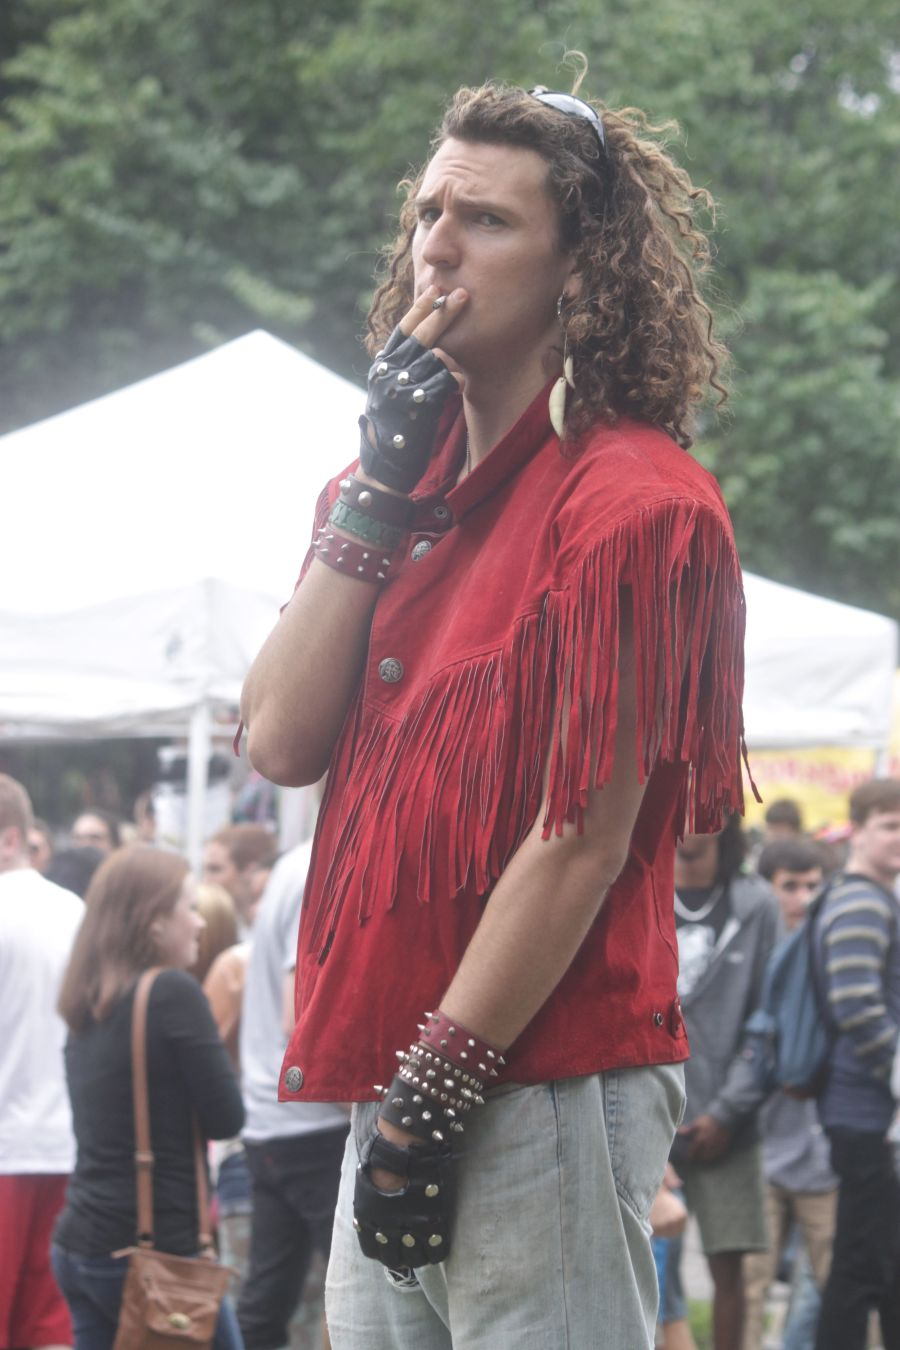 boston hemp fest 2013 man in red fringe jacket smoking